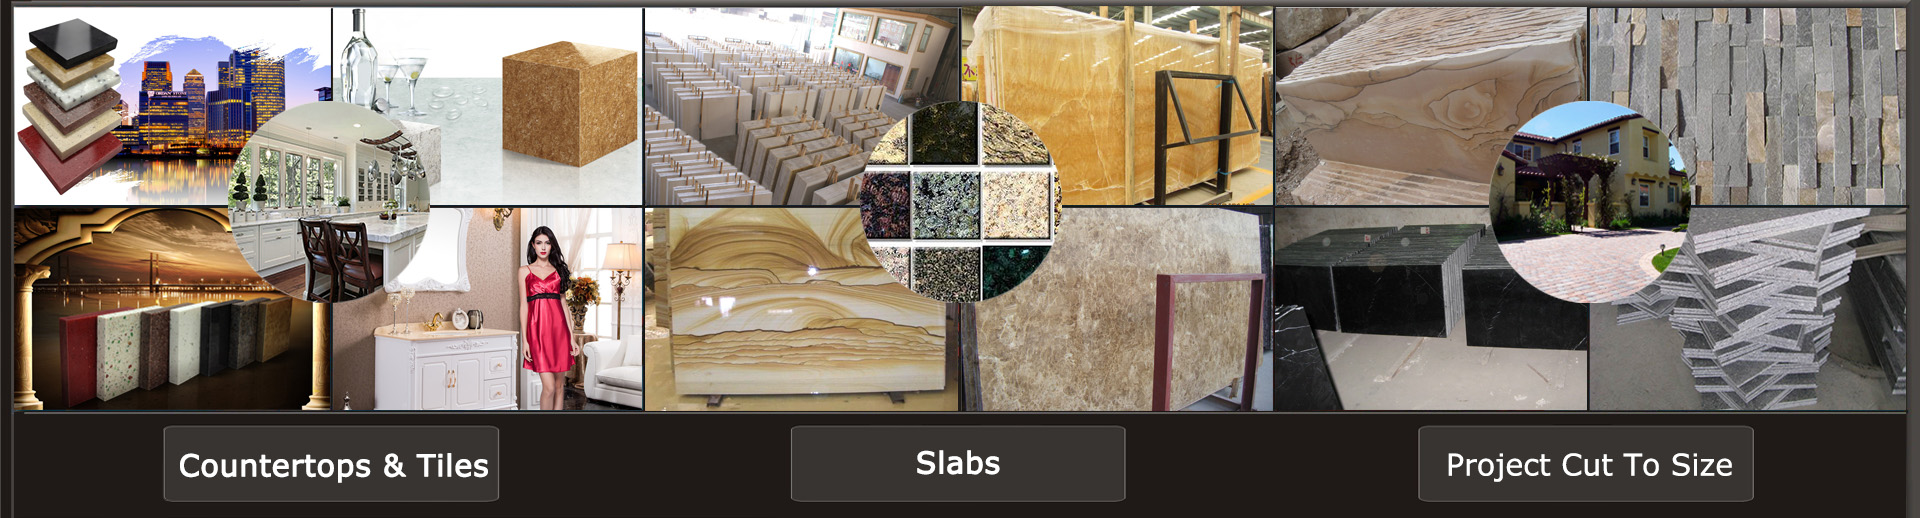 China Stone Countertops and Tiles and Slabs and Cut to Size